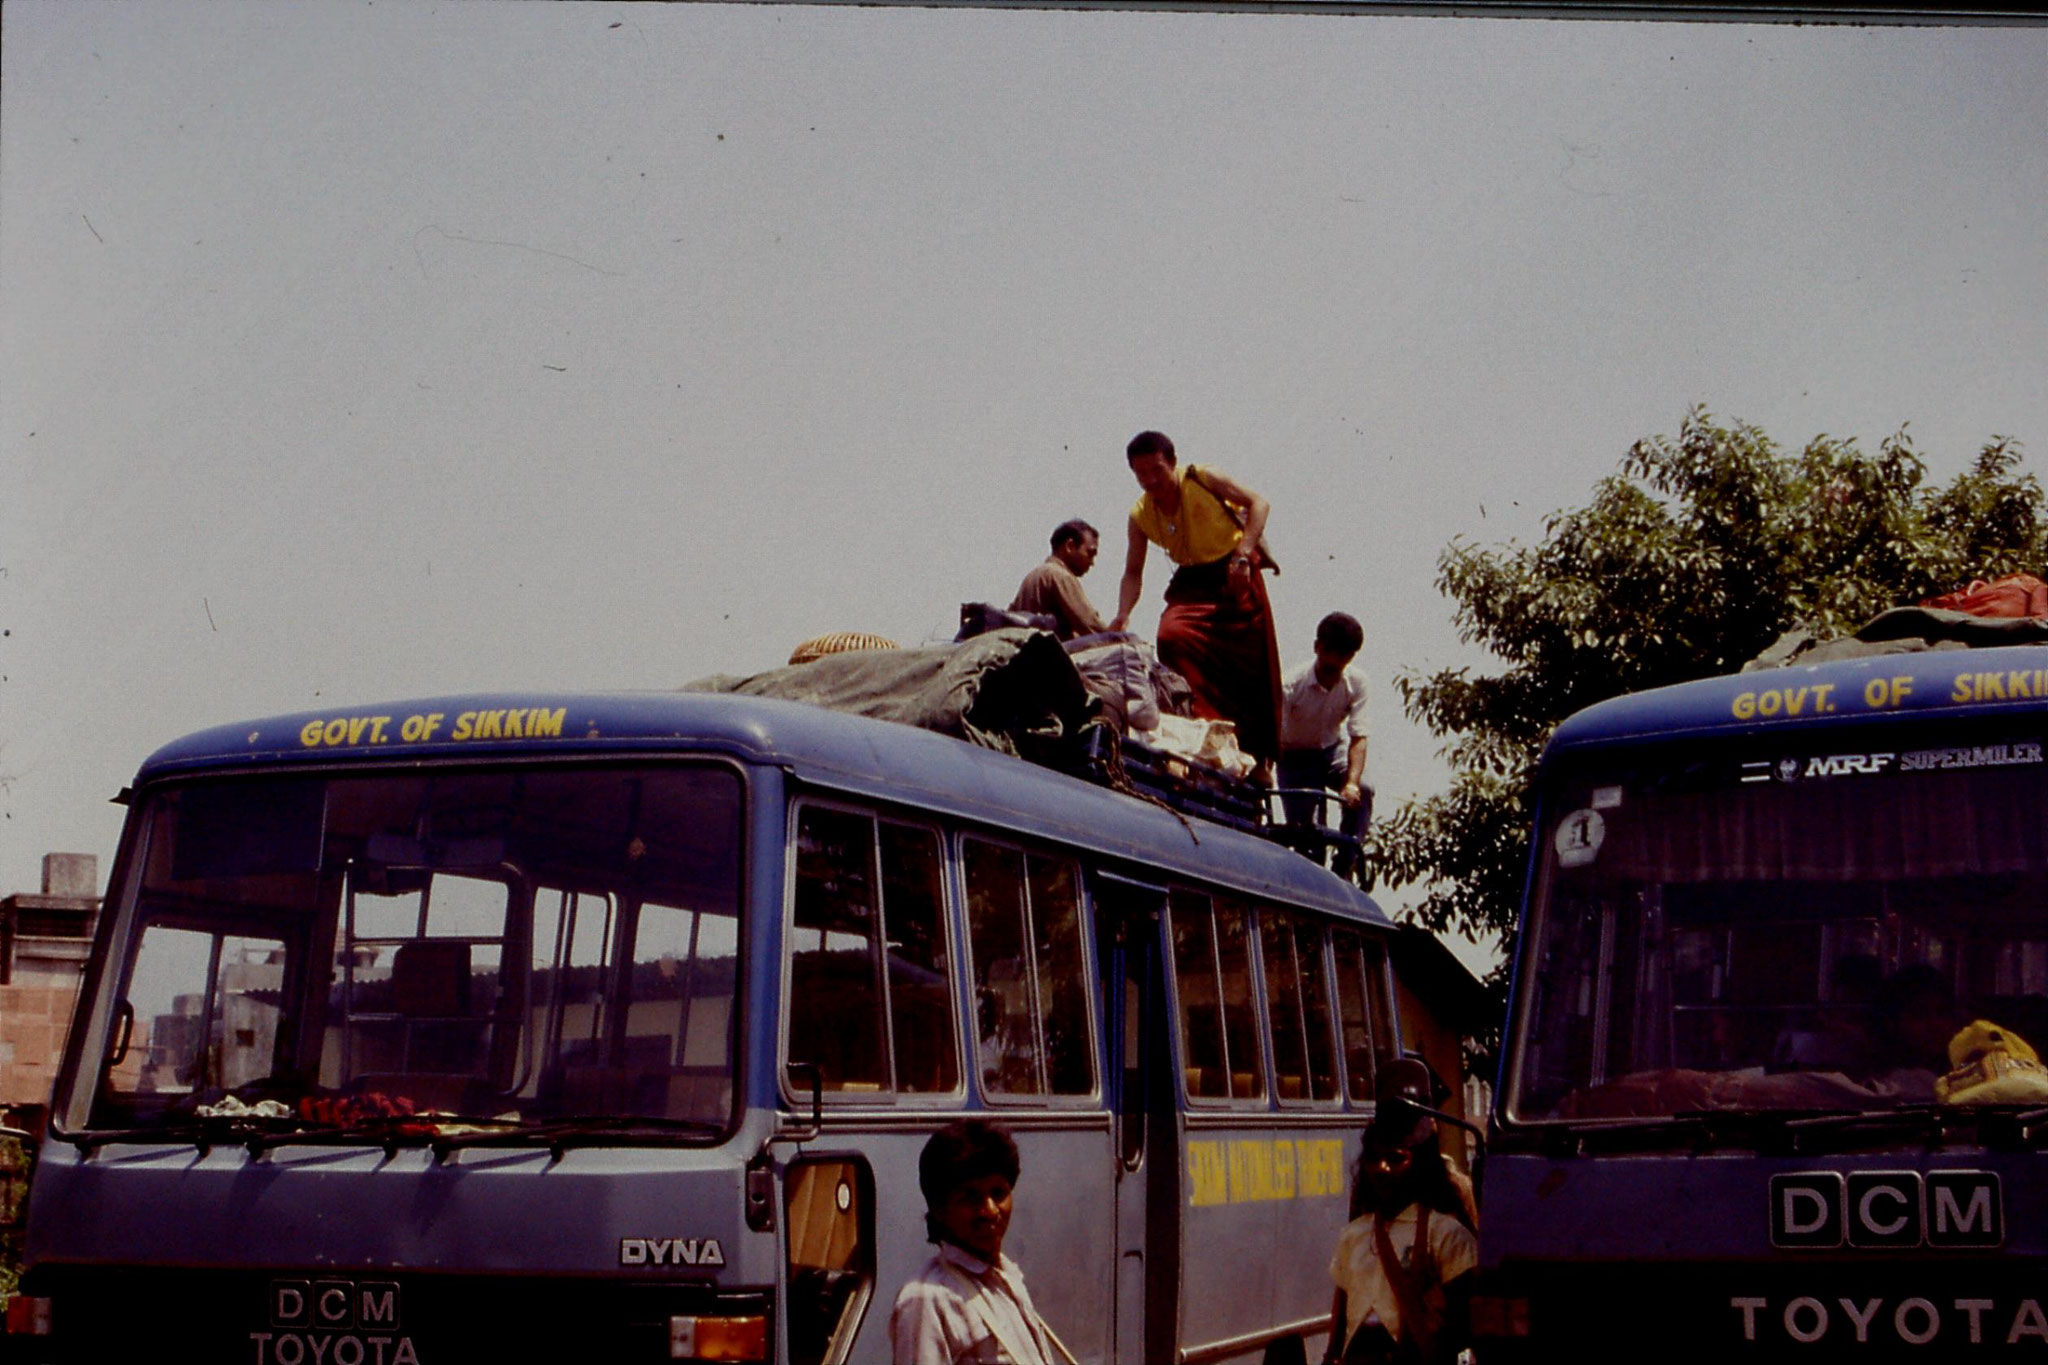 115/0: 21/4/1990 Siliguri (Assam) - Sikkim State Bus Depot - monk loading luggage